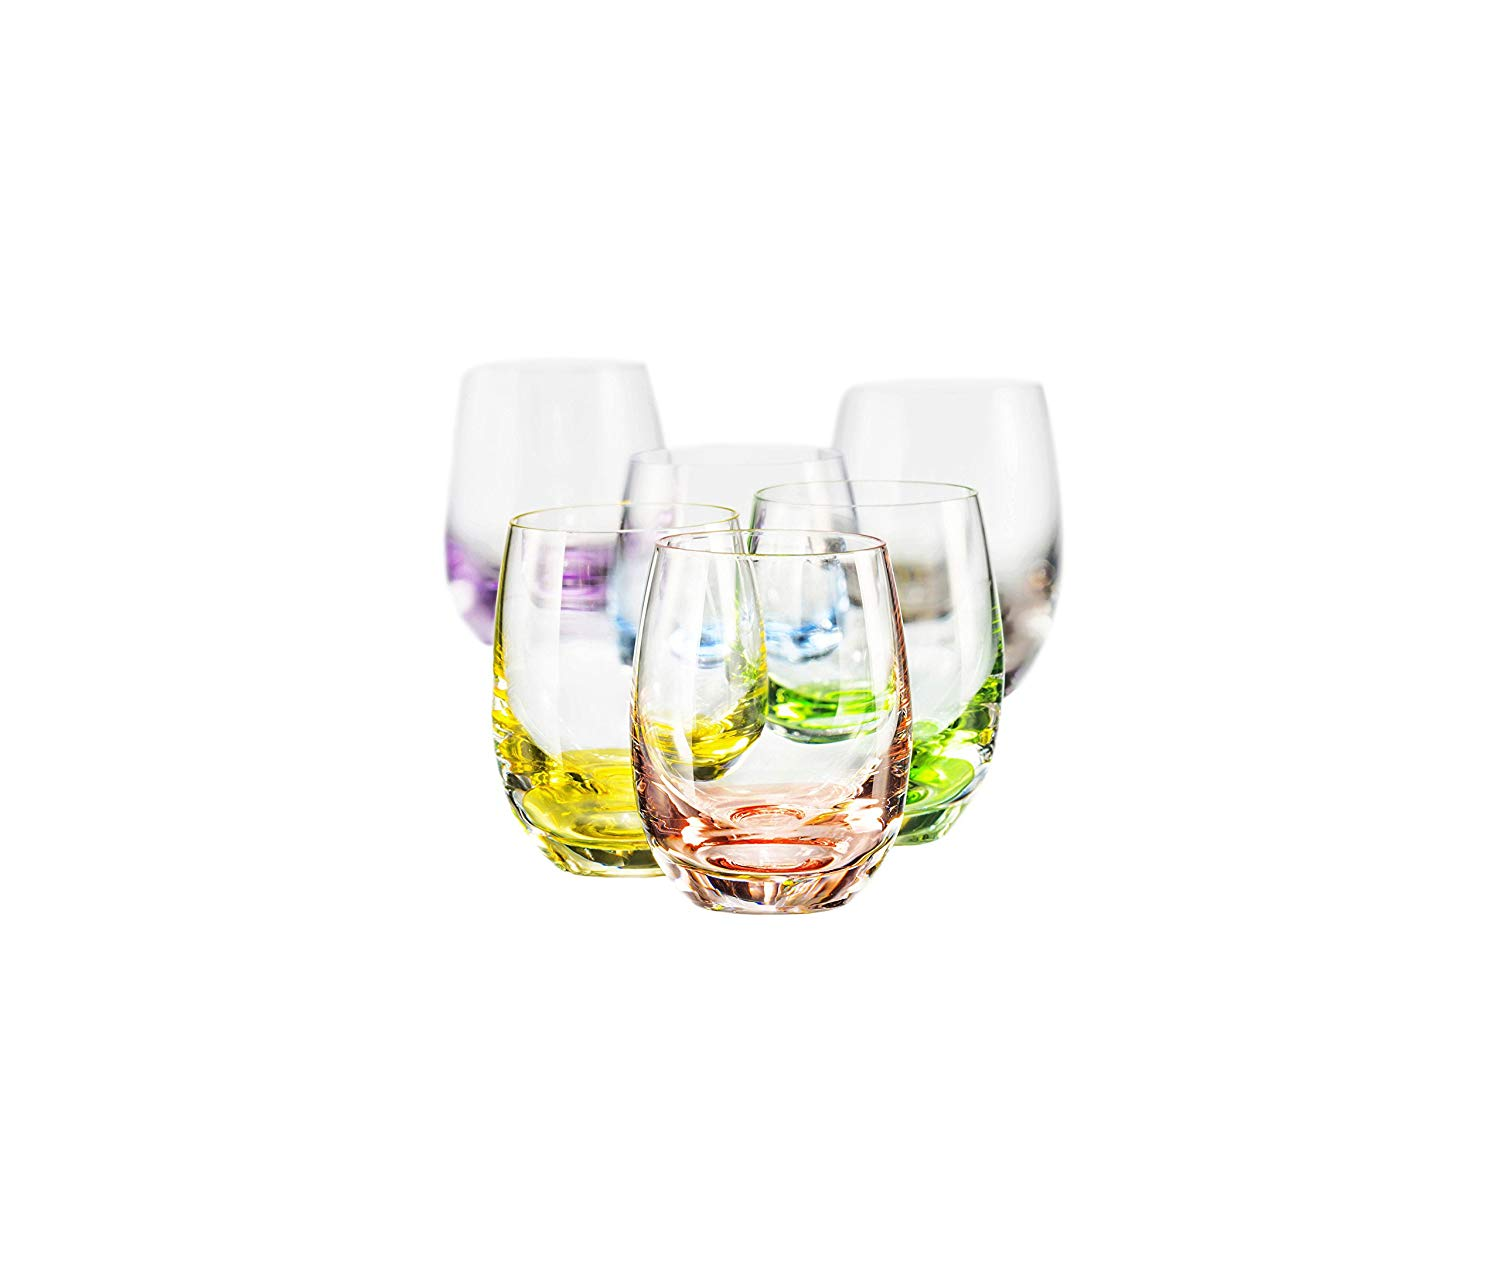 Bohemia Collection Rainbow Set Of 6 Shot Multi Colored Crystal Glasses 2 Oz Walmart Com Walmart Com